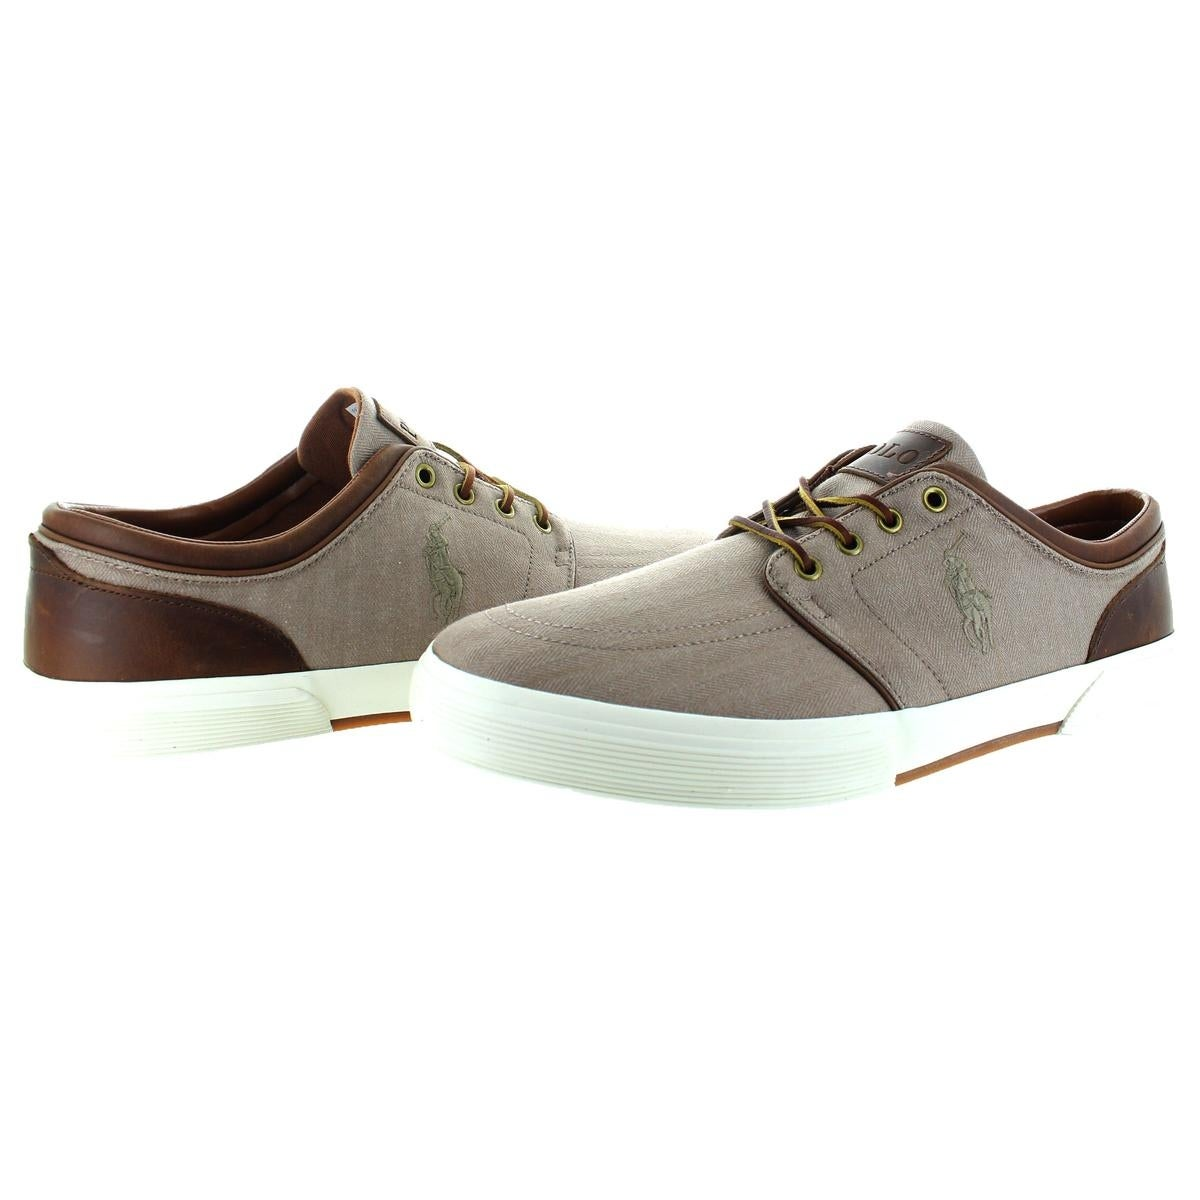 e0c76faf226 Shop Polo Ralph Lauren Mens Faxon Low Skateboarding Shoes Vulcanized  Fashion - On Sale - Free Shipping On Orders Over  45 - Overstock.com -  19315046